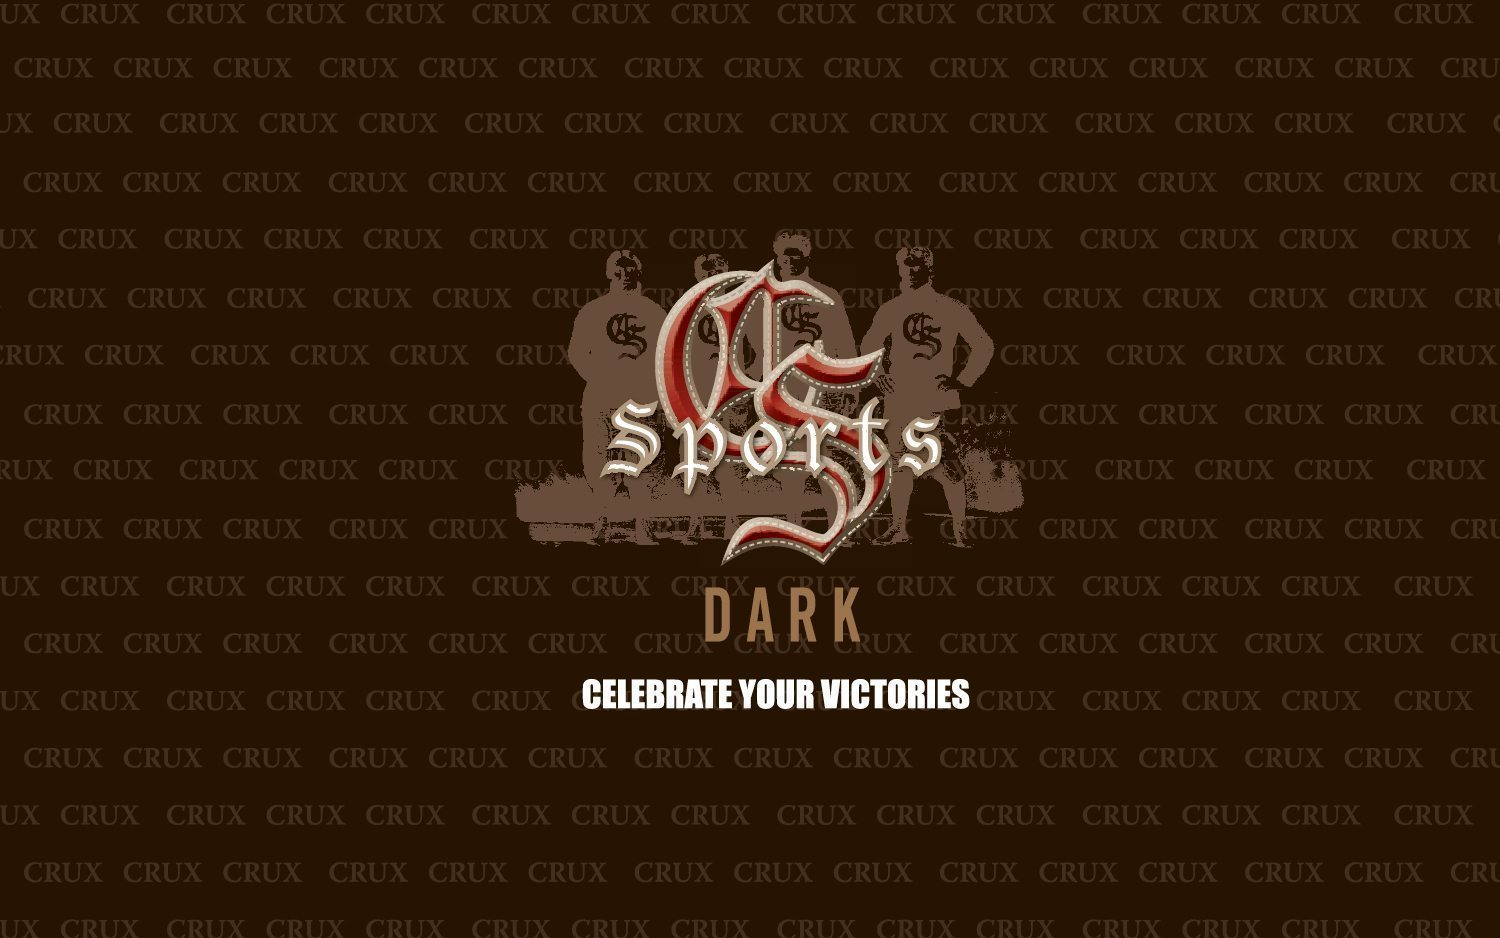 """Cigar News: Crux Cigars Adds """"Dark"""" Line Extensions For Sports & Skeeterz Brands"""